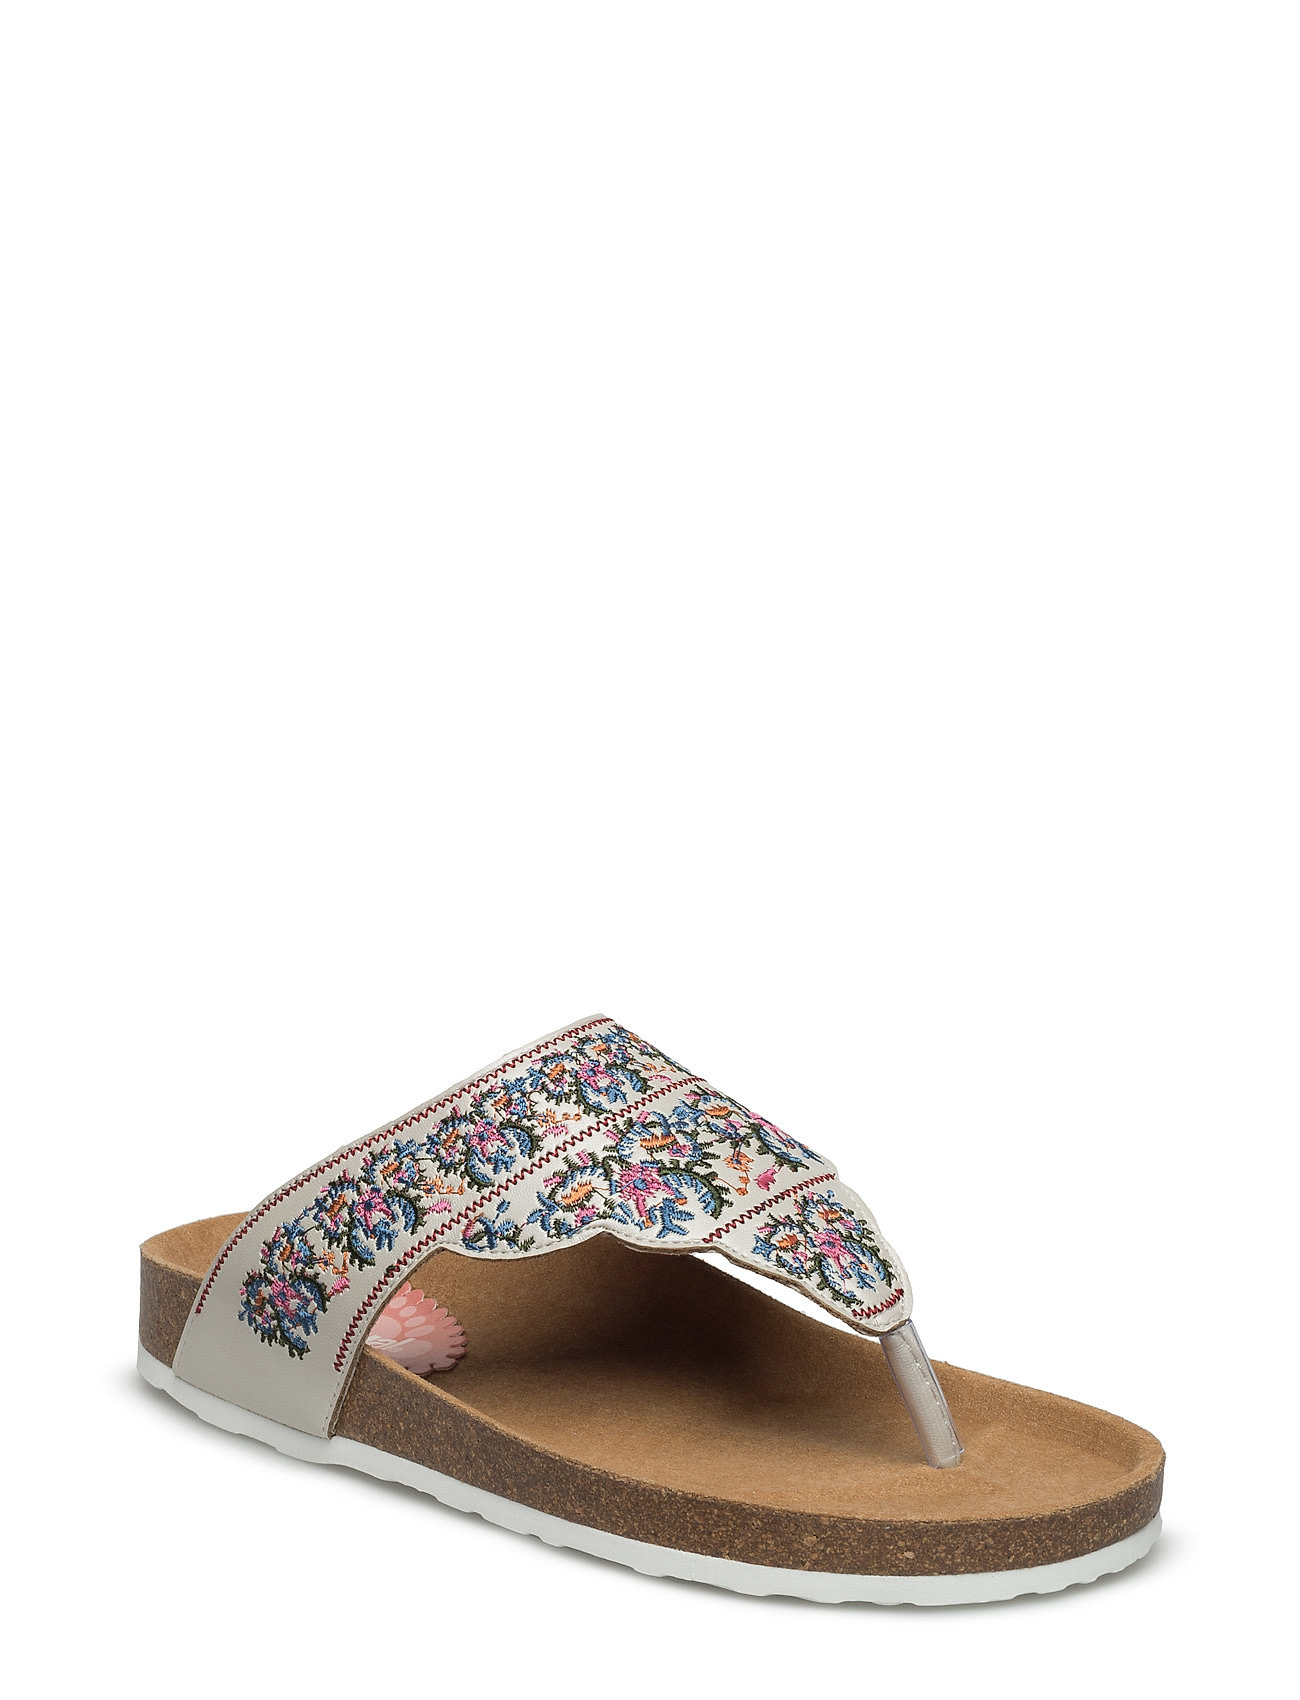 Shoes Tajmahal Flowers Desigual Shoes Sandaler til Damer i Blanco